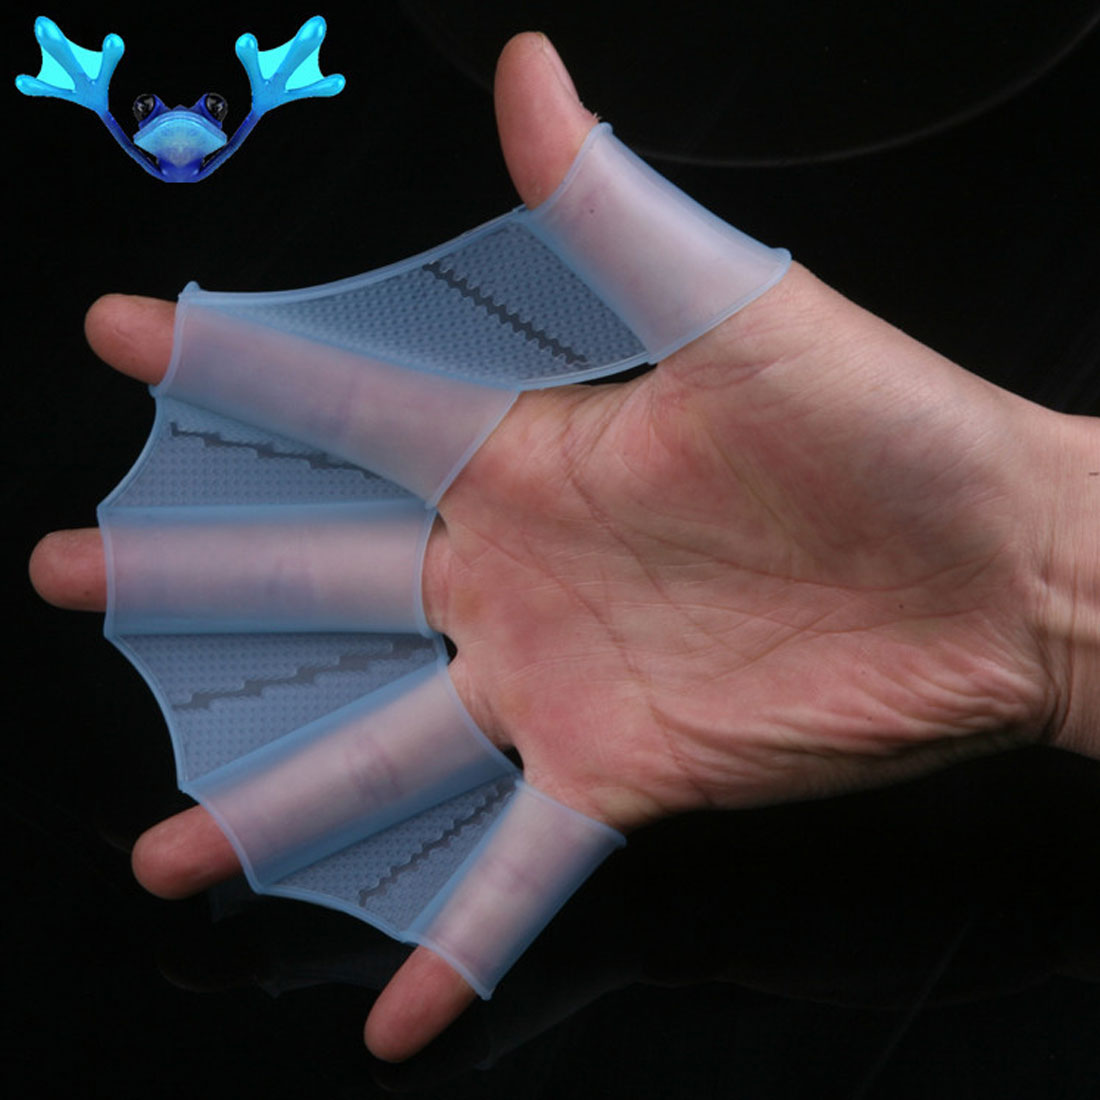 Soft Silicone Swimming Fins Flippers Frog Hand Swim Webbed Glove Multi Size Training Paddle Dive Useful 1 pair